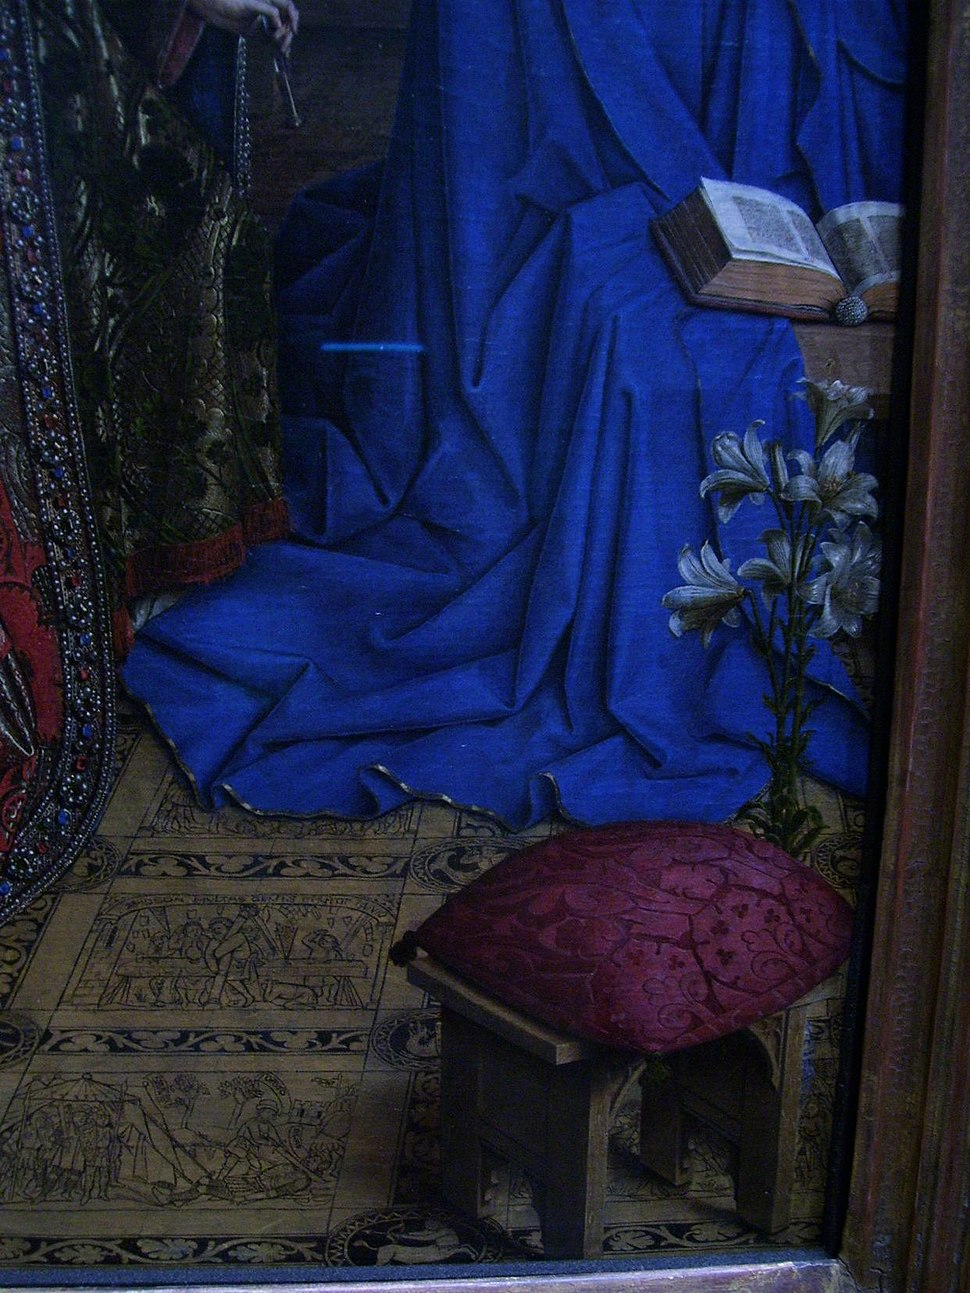 Annunciation - Lily and the floor - Jan van Eyck - 1434 - NG Wash DC